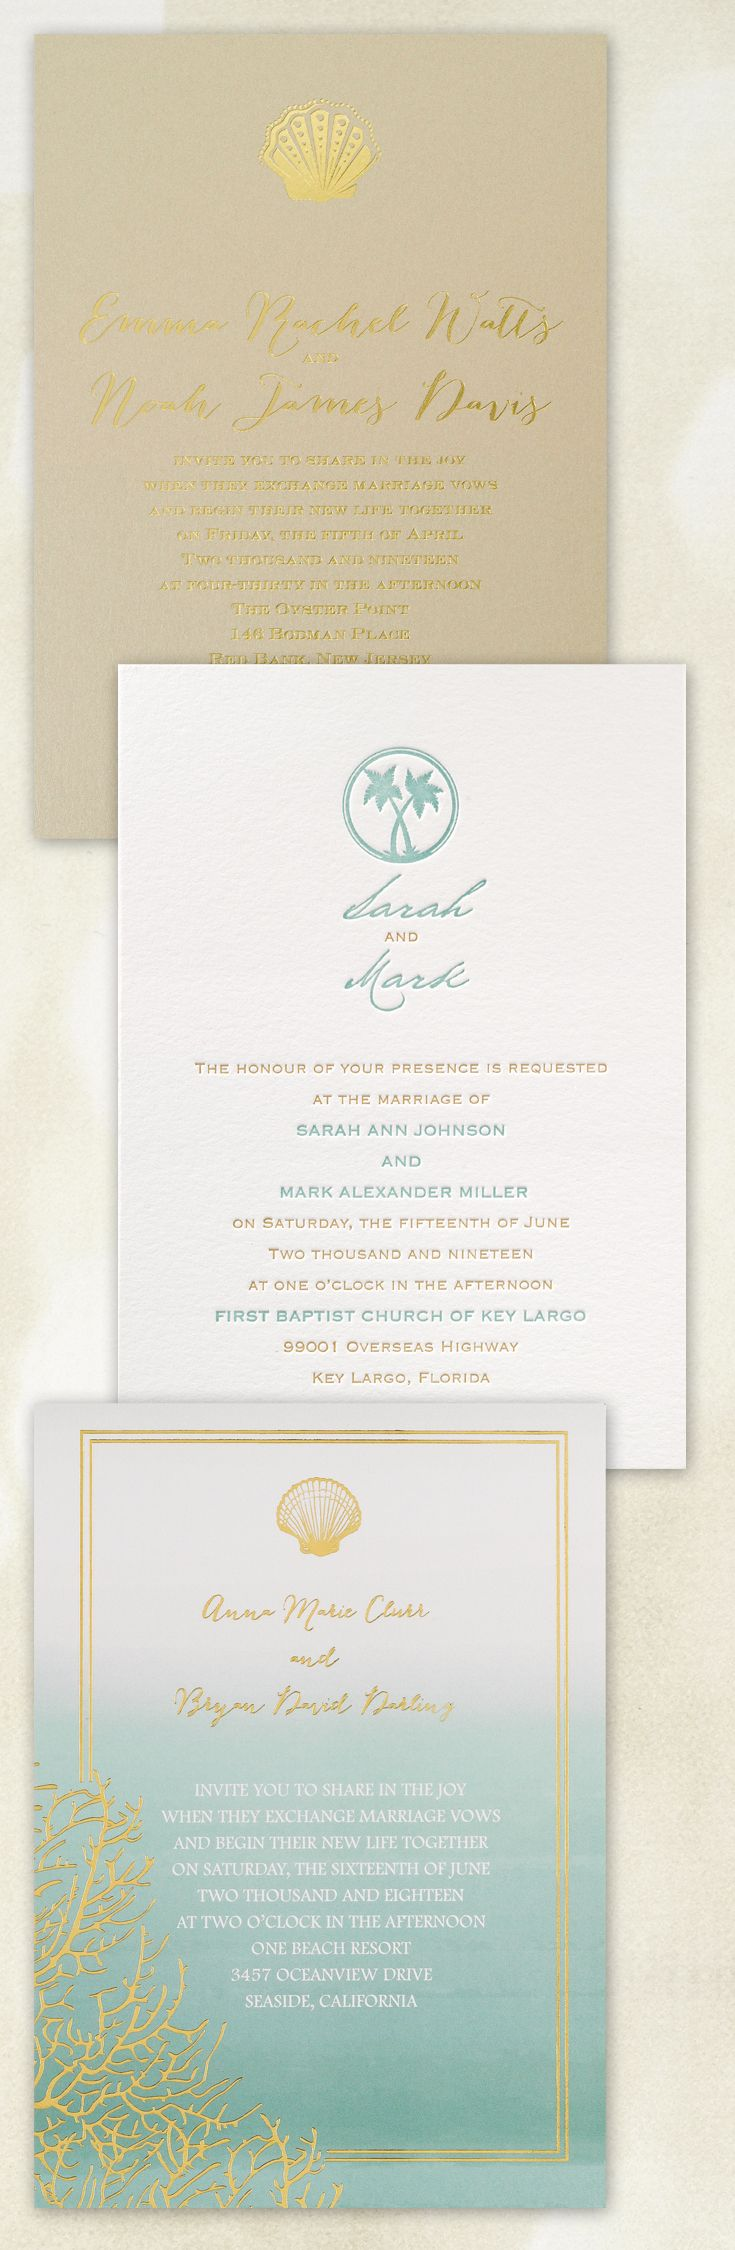 Set the tone for your beach themed wedding with coordinating wedding invitations featuring tropical palm trees, seashells and beach scenery  ||  @dawninvites